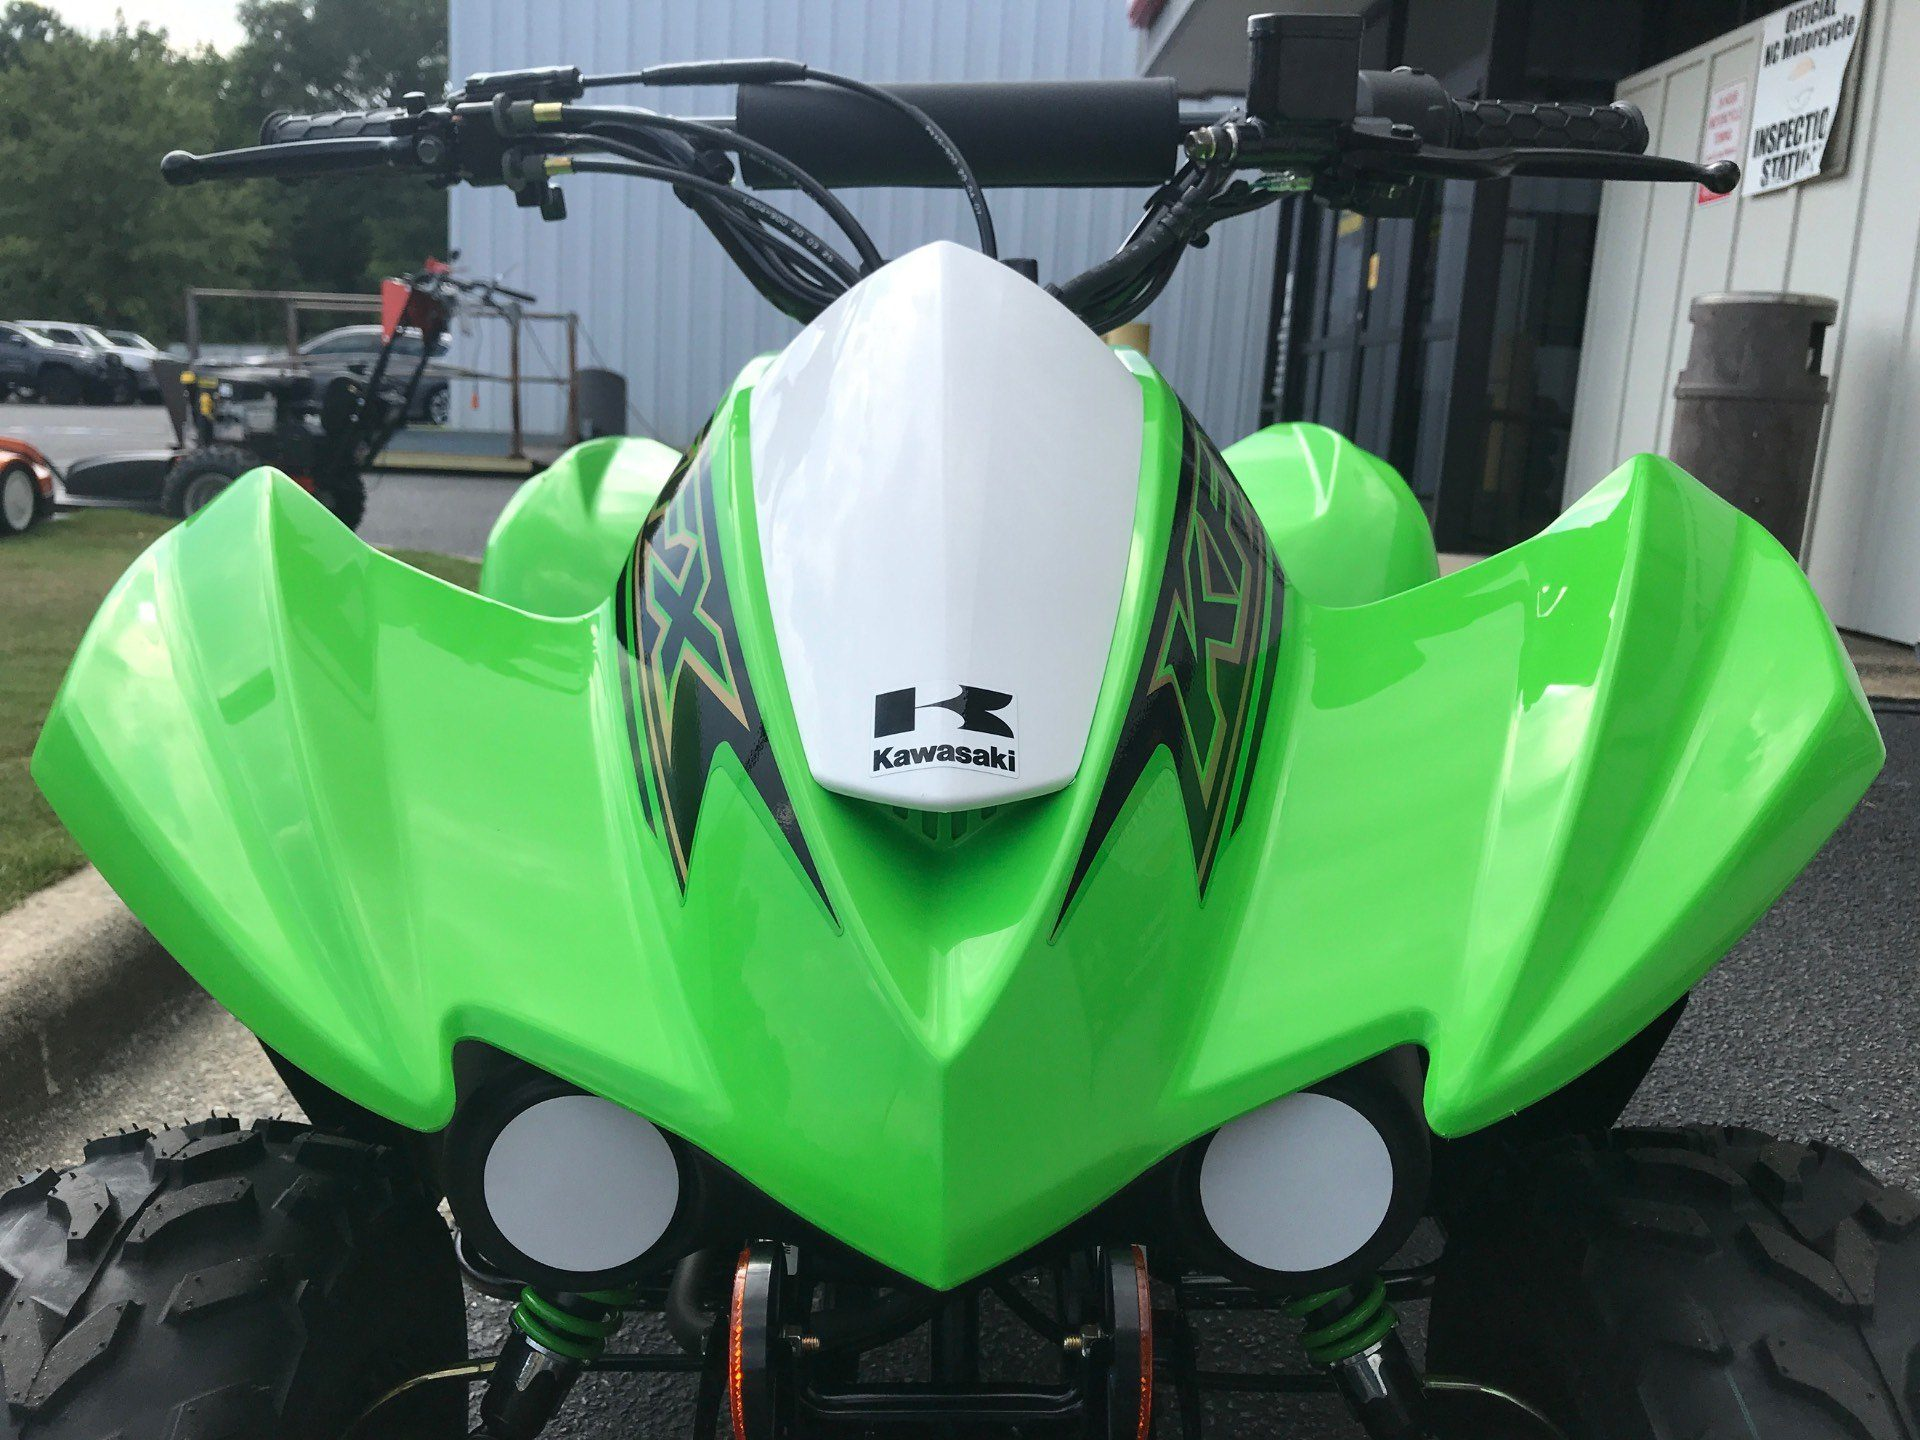 2021 Kawasaki KFX 50 in Greenville, North Carolina - Photo 9